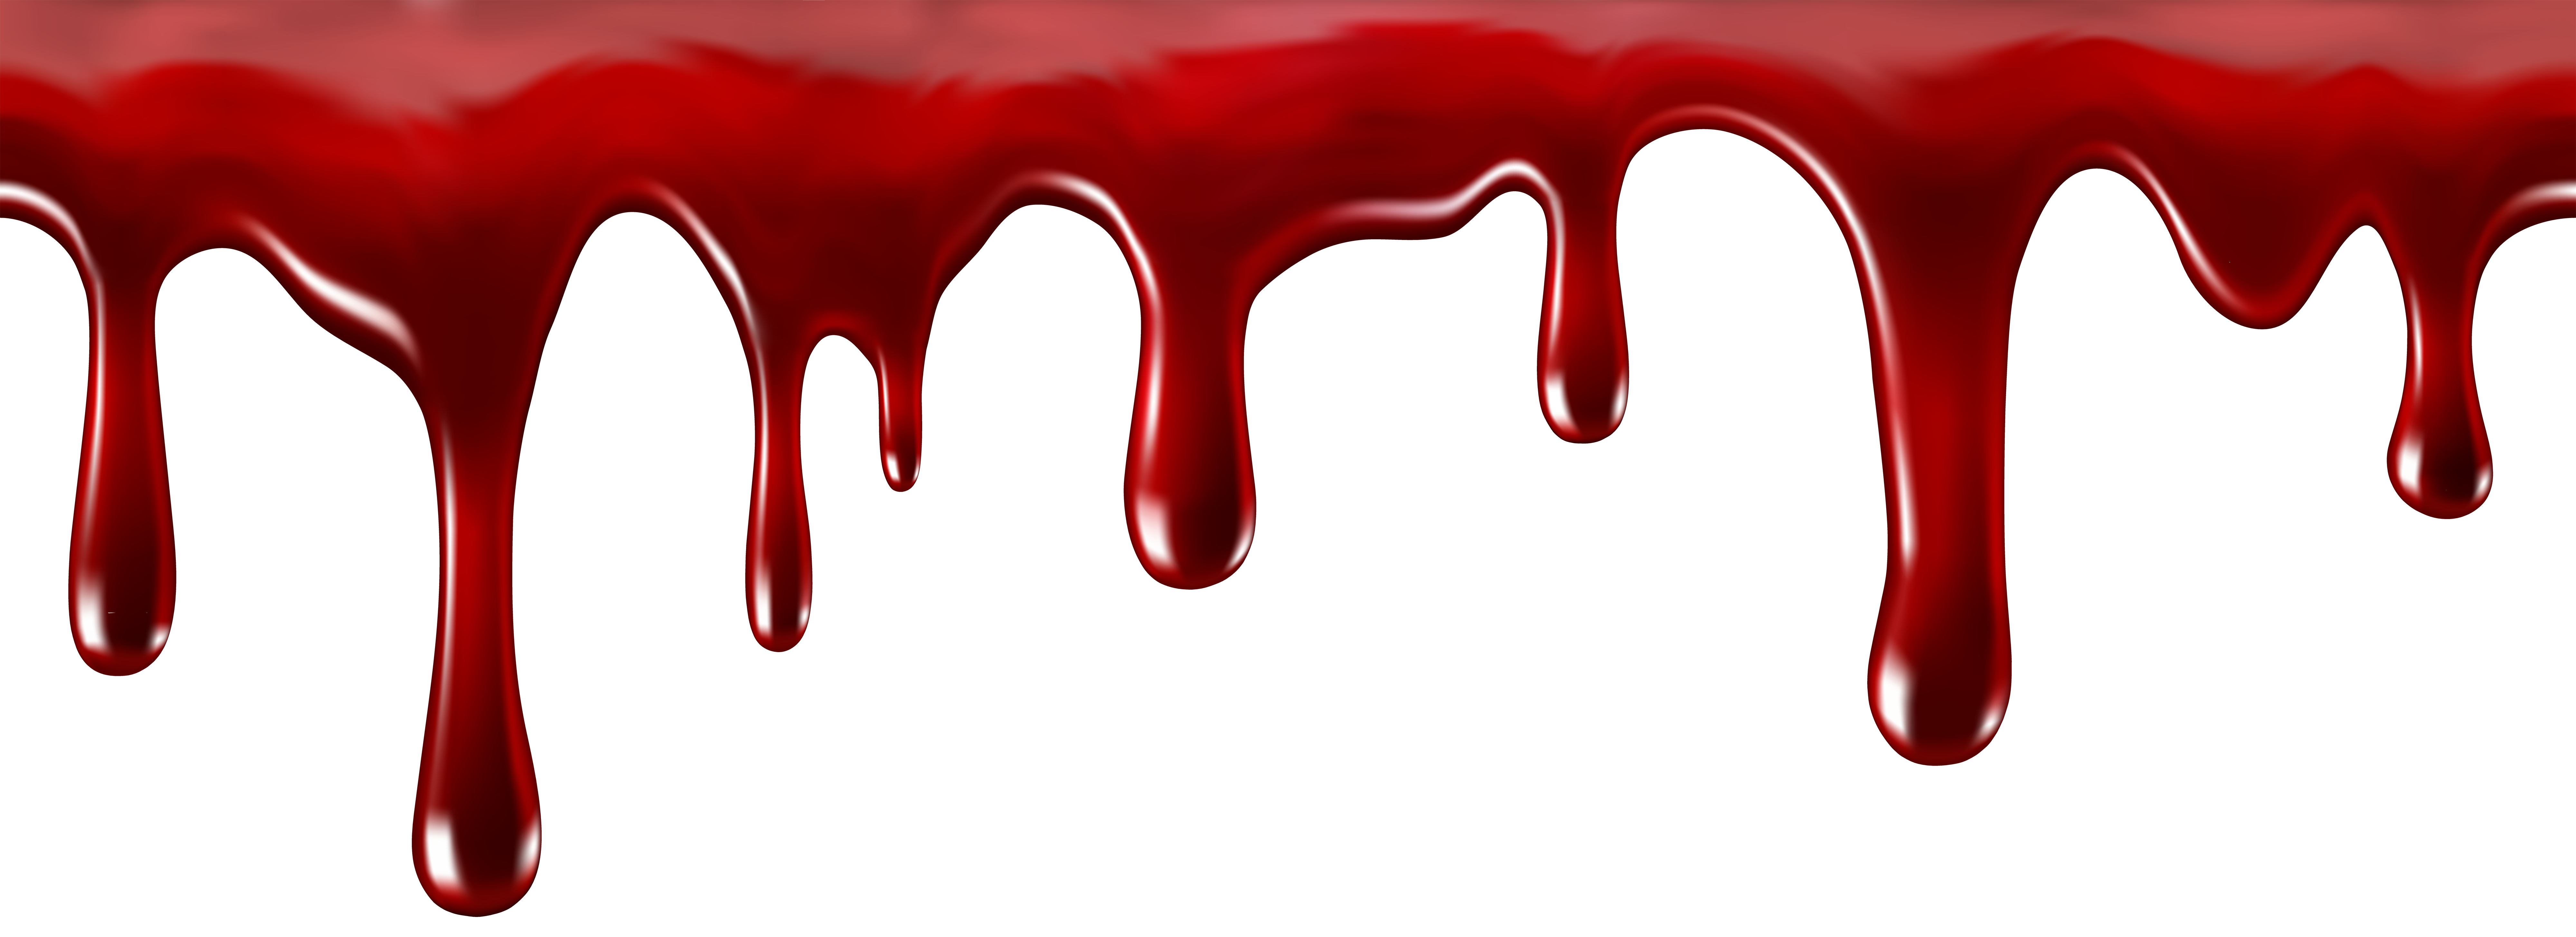 Halloween Blood Decor Images